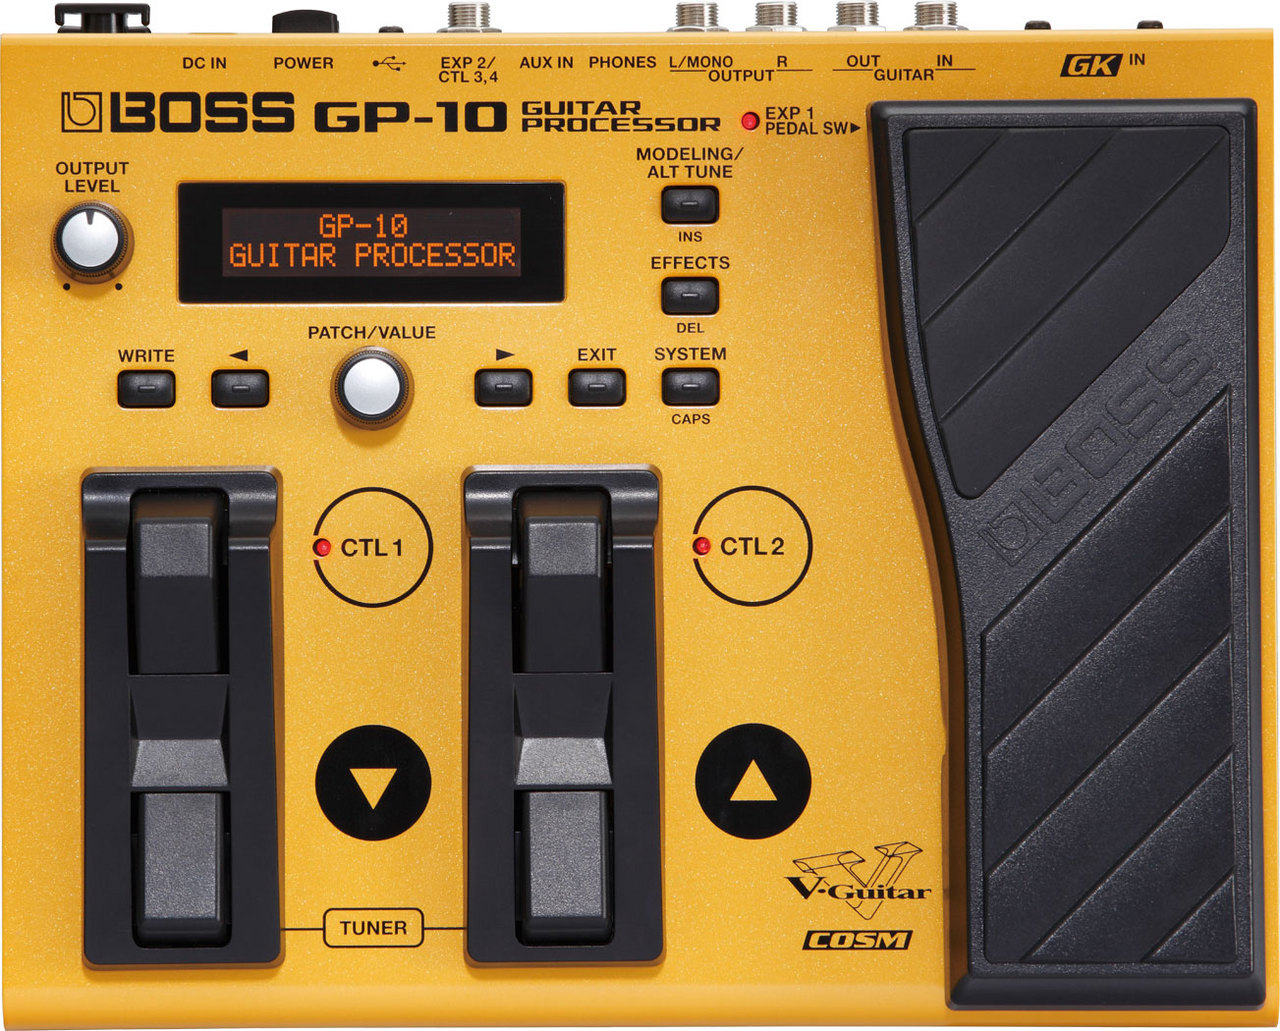 BOSS [new] GP-10S [body only] [guitar processor] []